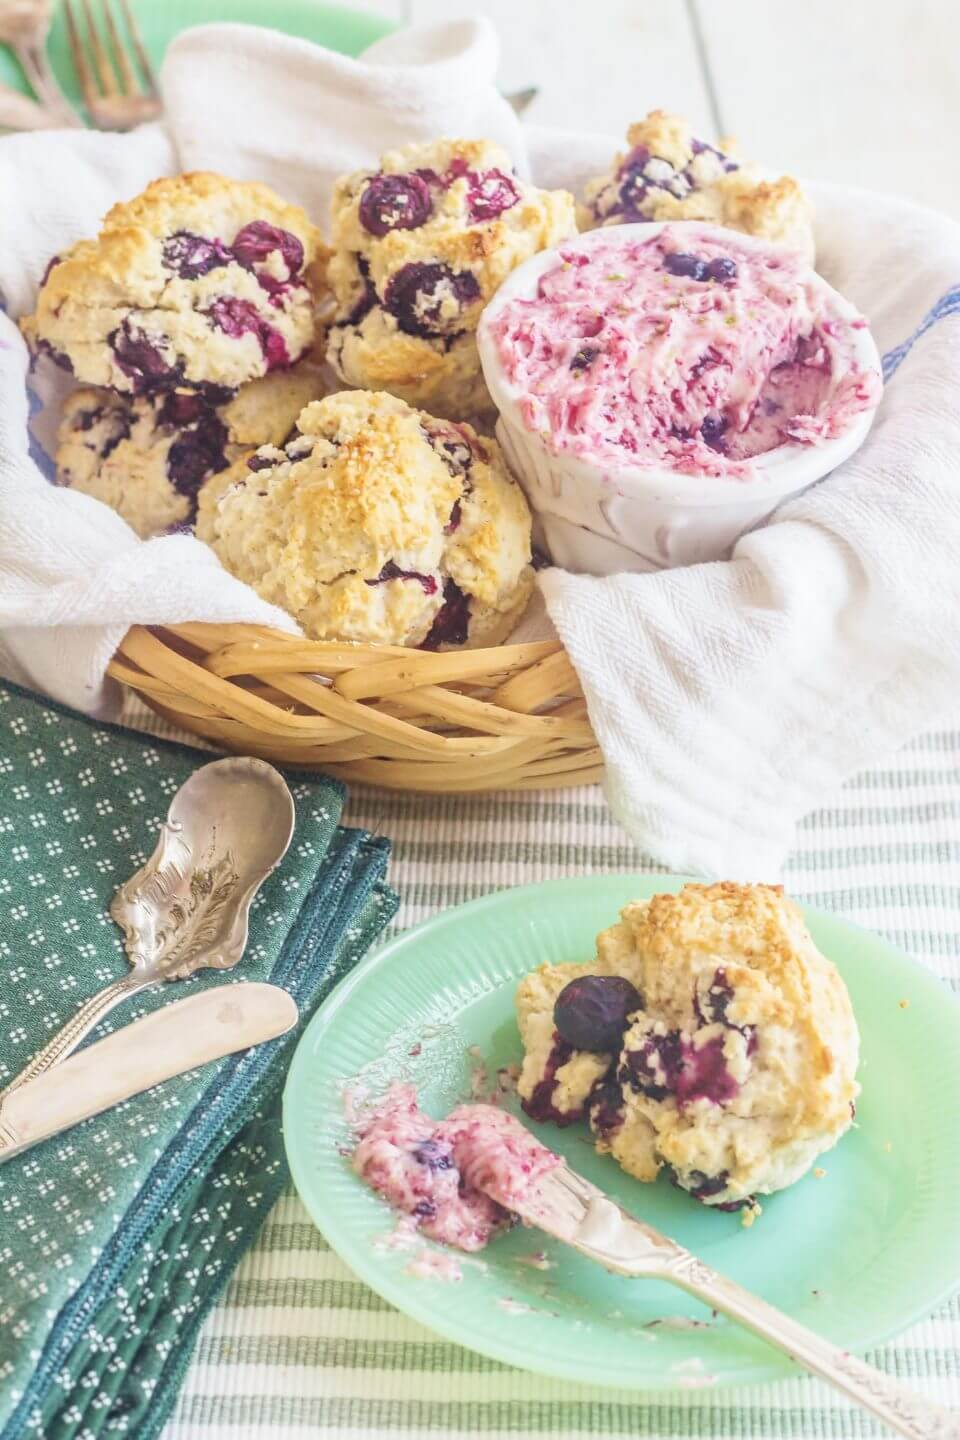 Blueberry Brunch Recipes Syrup & Biscuits Wish Farms